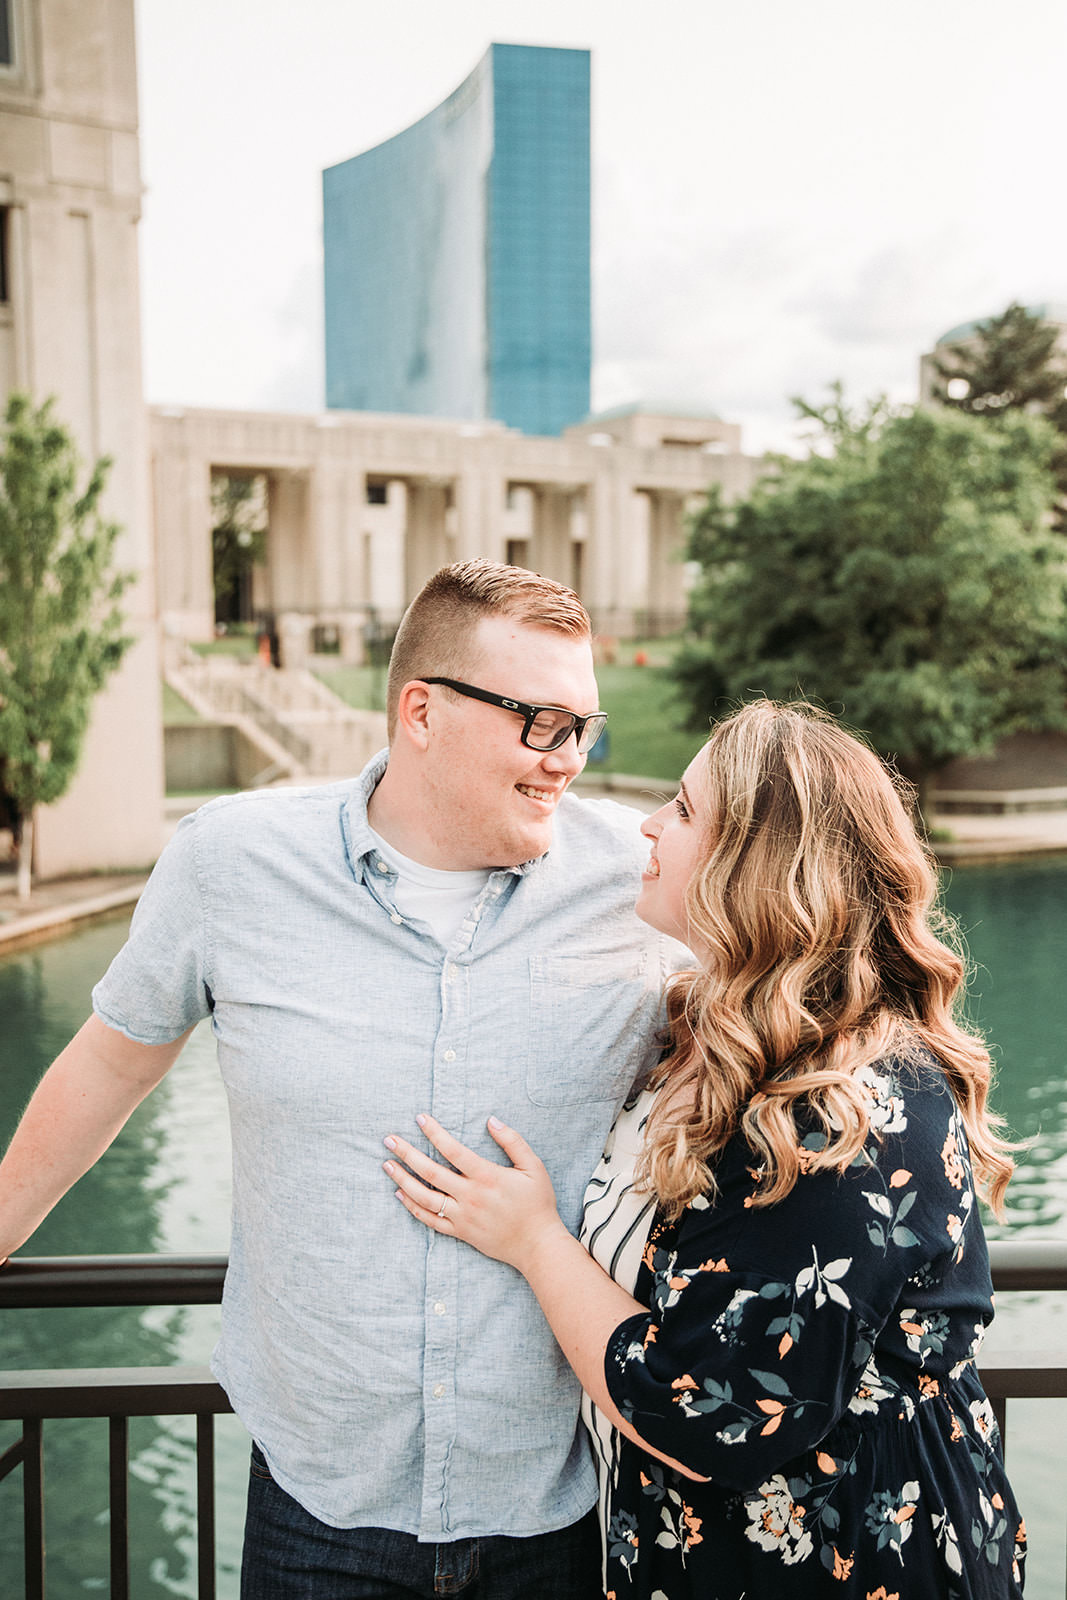 DowntownIndianapolisSpringEngagementPhotos-39.jpg